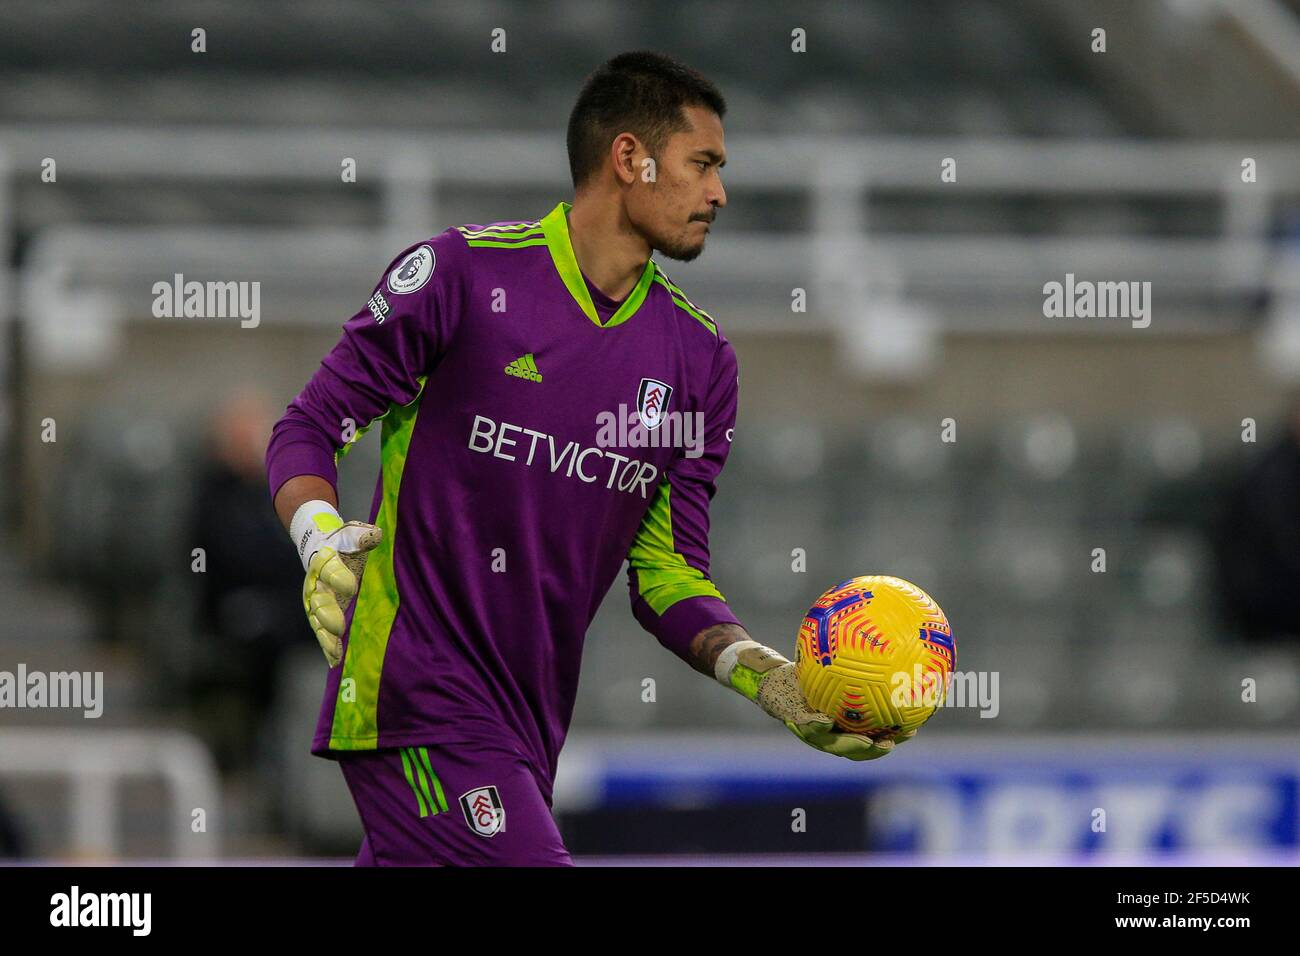 Alphonse Areola High Resolution Stock Photography and Images - Alamy